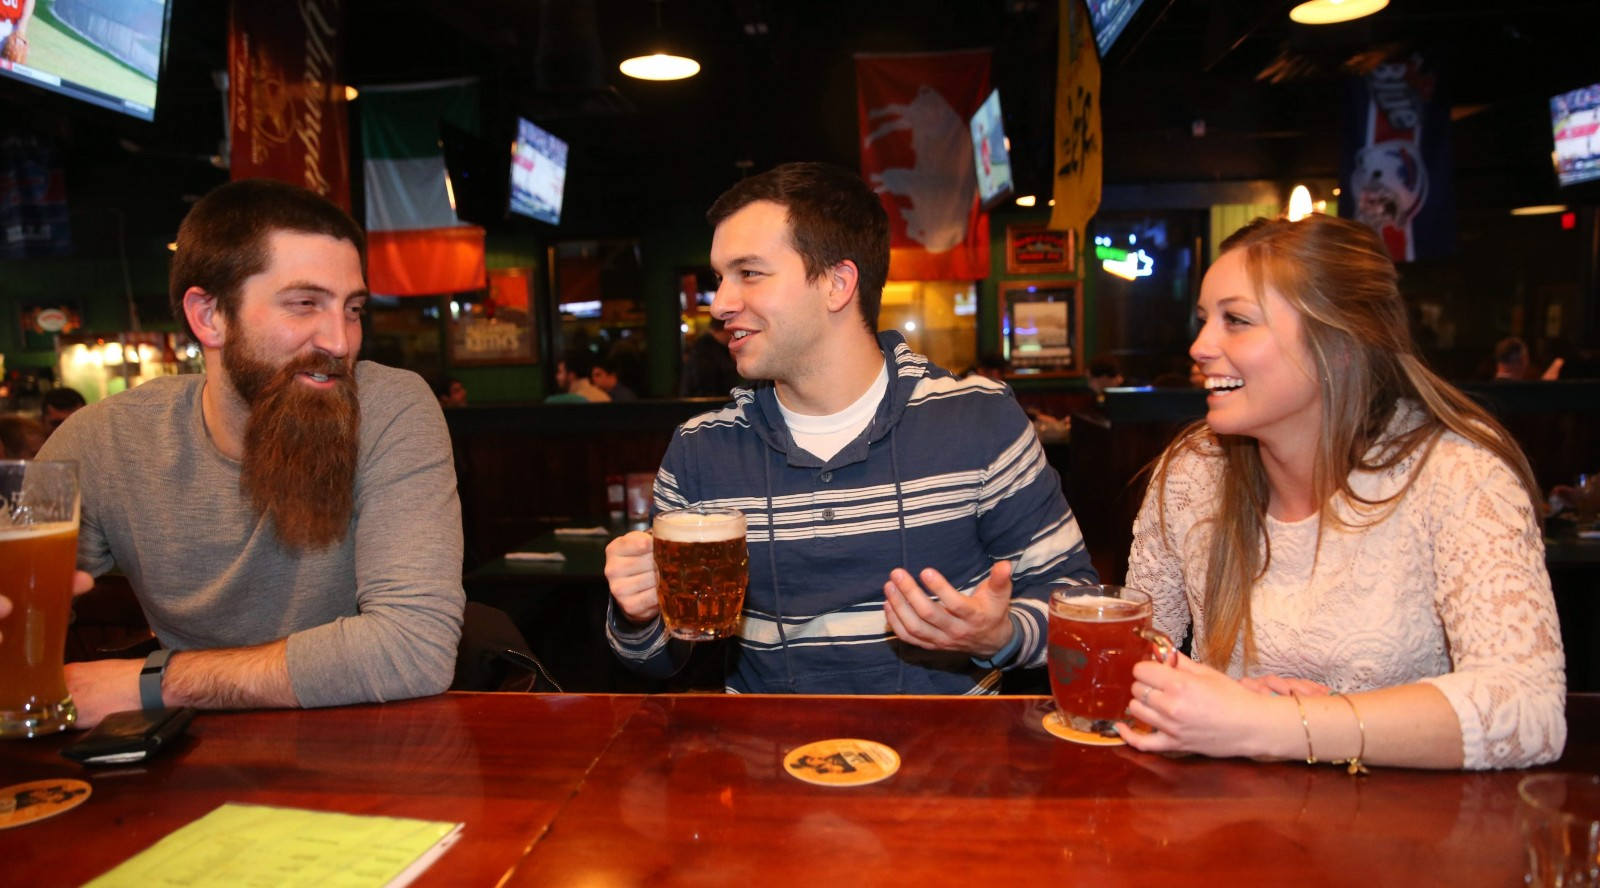 Hanging out at MacGregor's, from left, are Scott Goodheart of Collins, Mike Duino of Hamburg and Scott's sister Christie Goodheart of Springville. (Sharon Cantillon/Buffalo News)